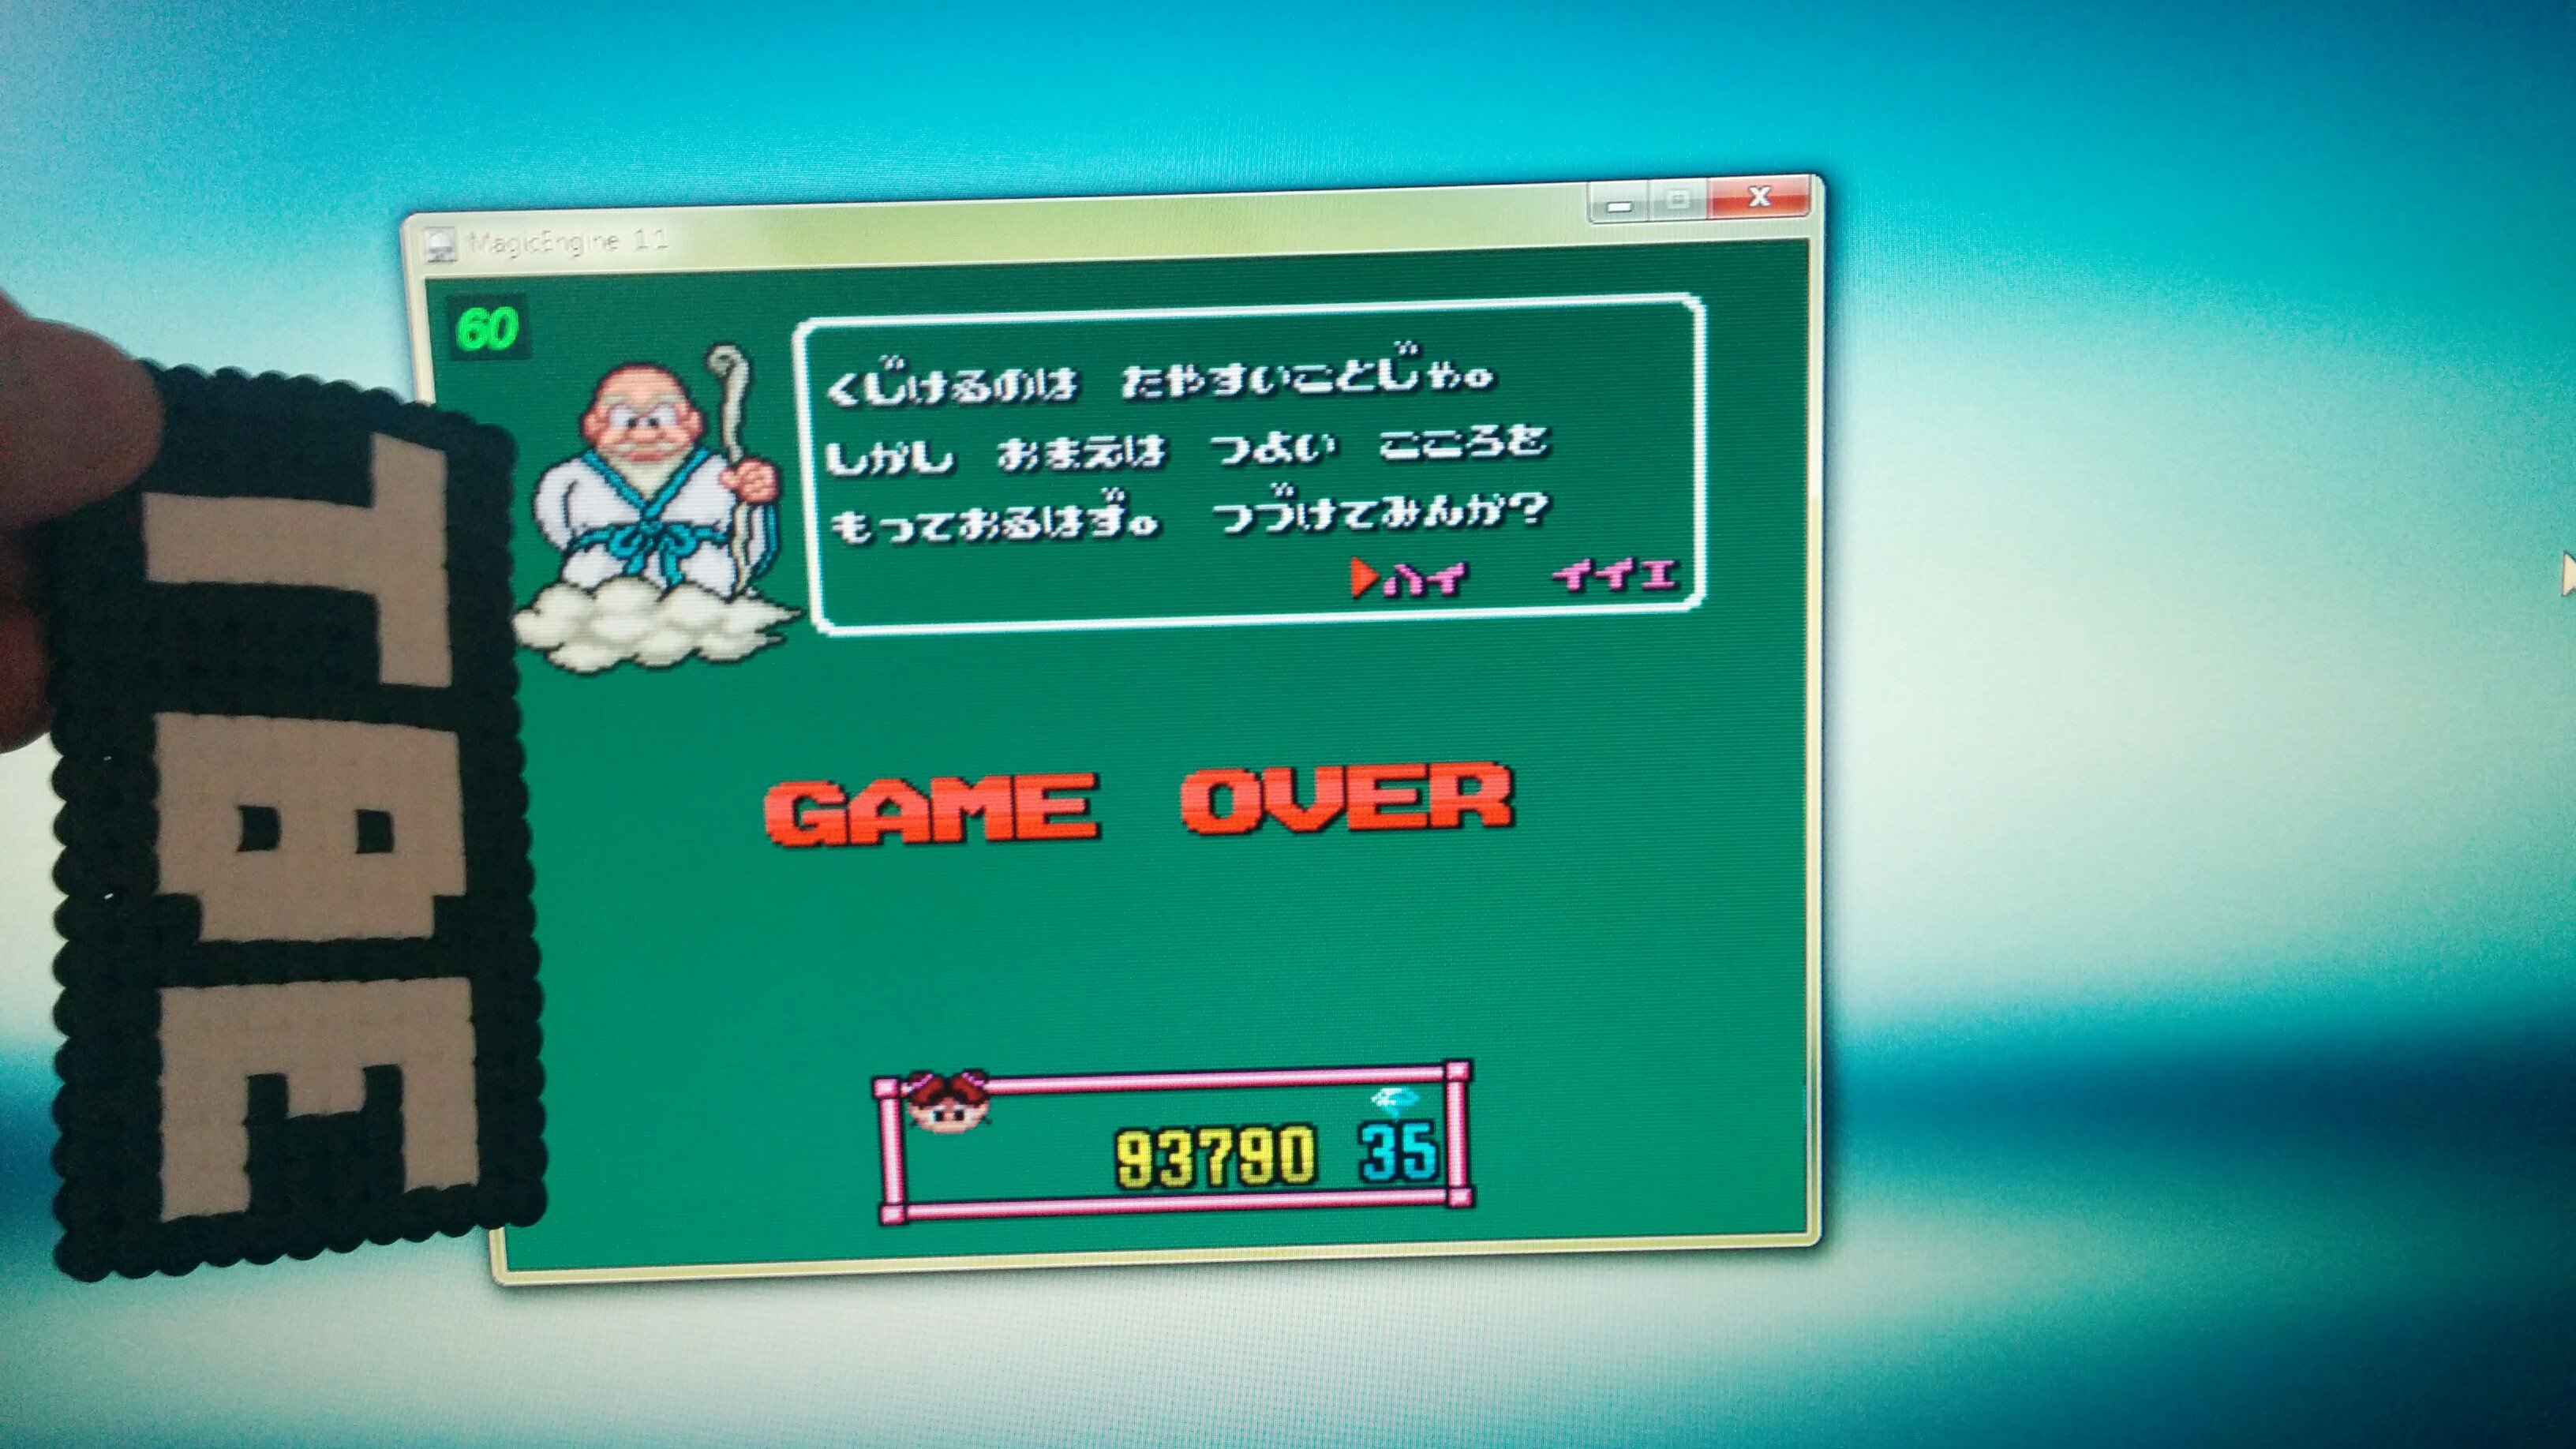 Sixx: Be Ball (TurboGrafx-16/PC Engine Emulated) 93,790 points on 2014-09-26 15:06:27